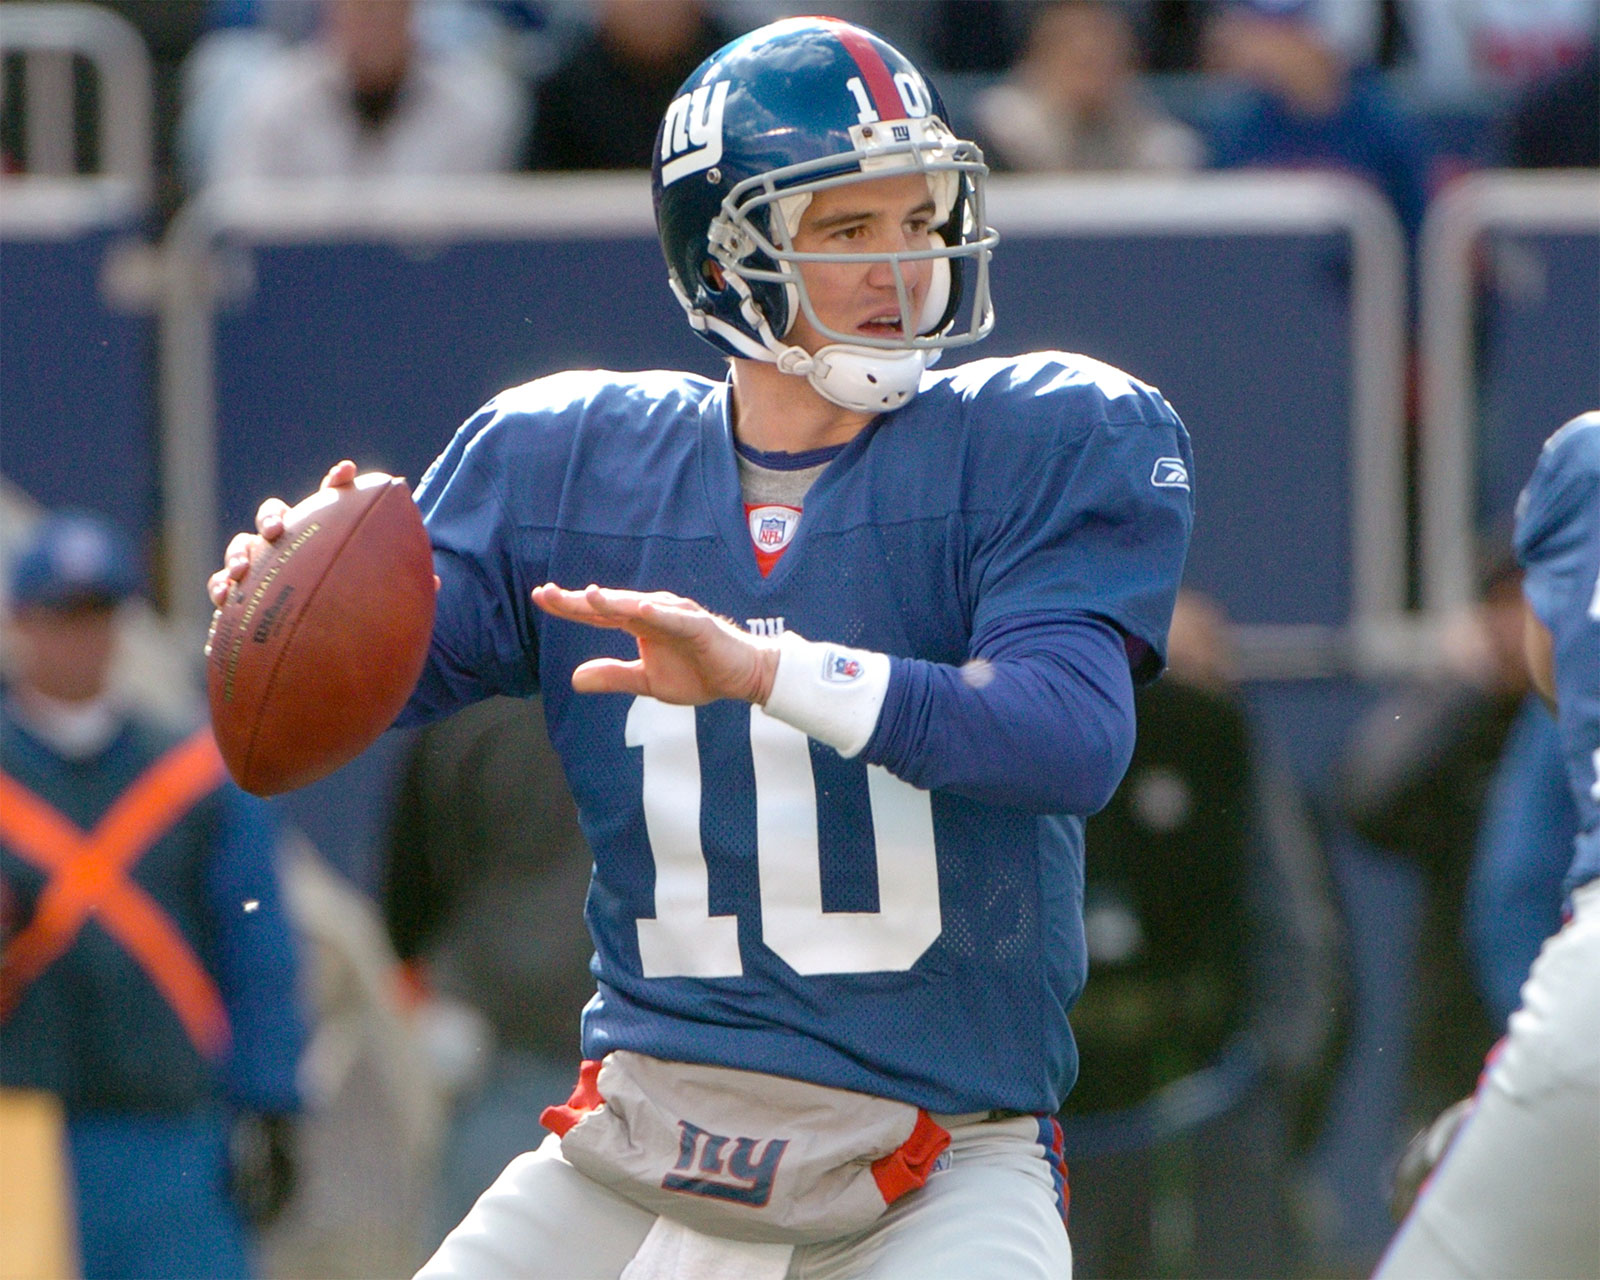 Eli Manning Phone number, Email Id, Fanmail, Instagram, Tiktok, and Contact Details